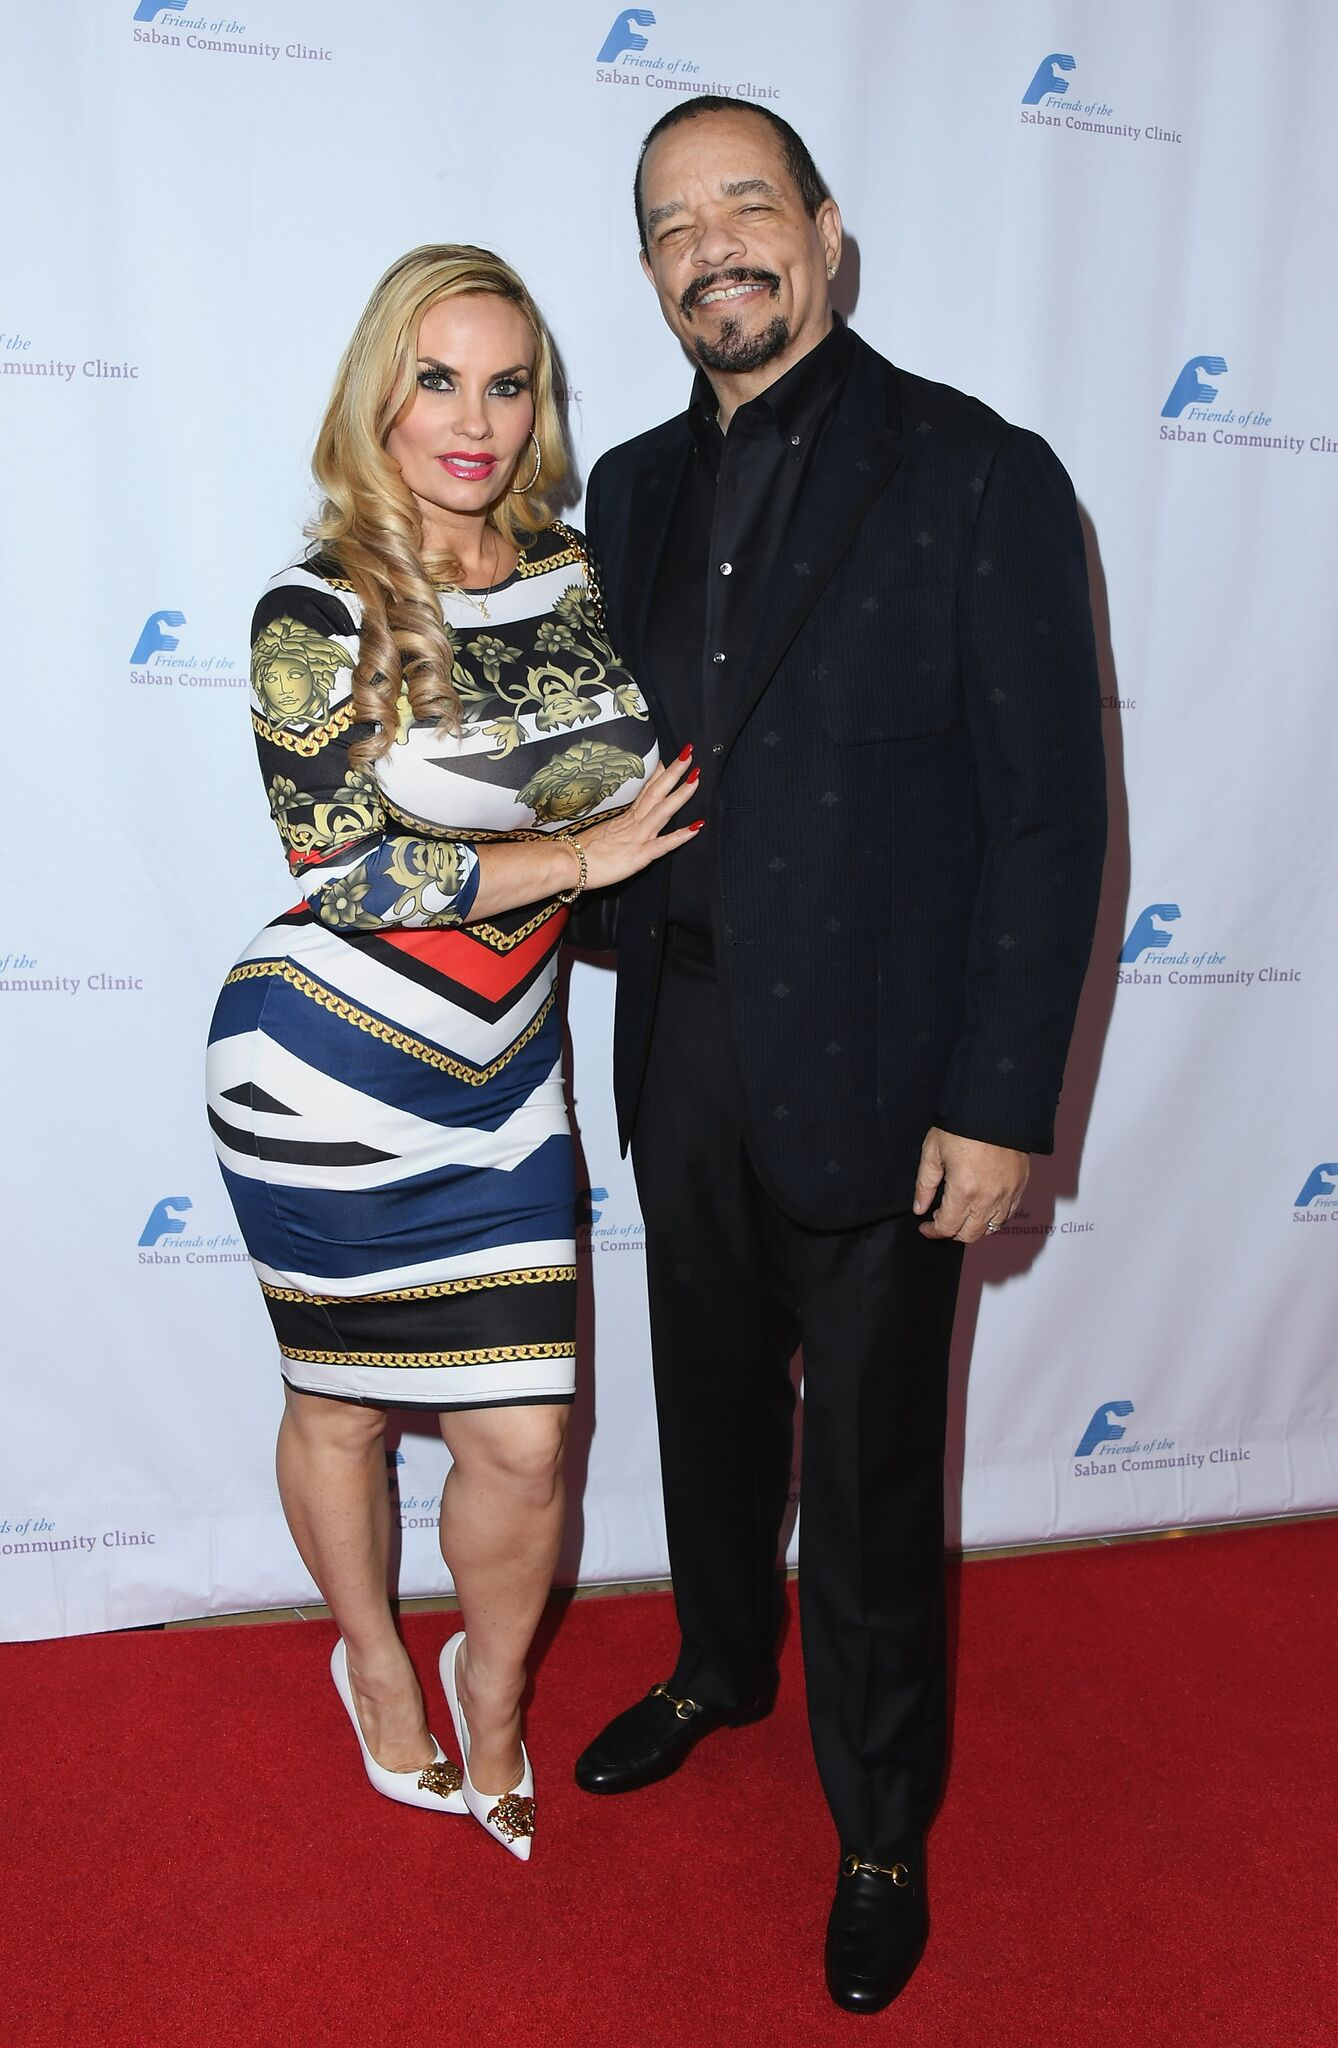 Coco Austin and Ice-T attend Friends Of The Saban Community Clinic's 42nd Annual Gala at The Beverly Hilton Hotel | Getty Images